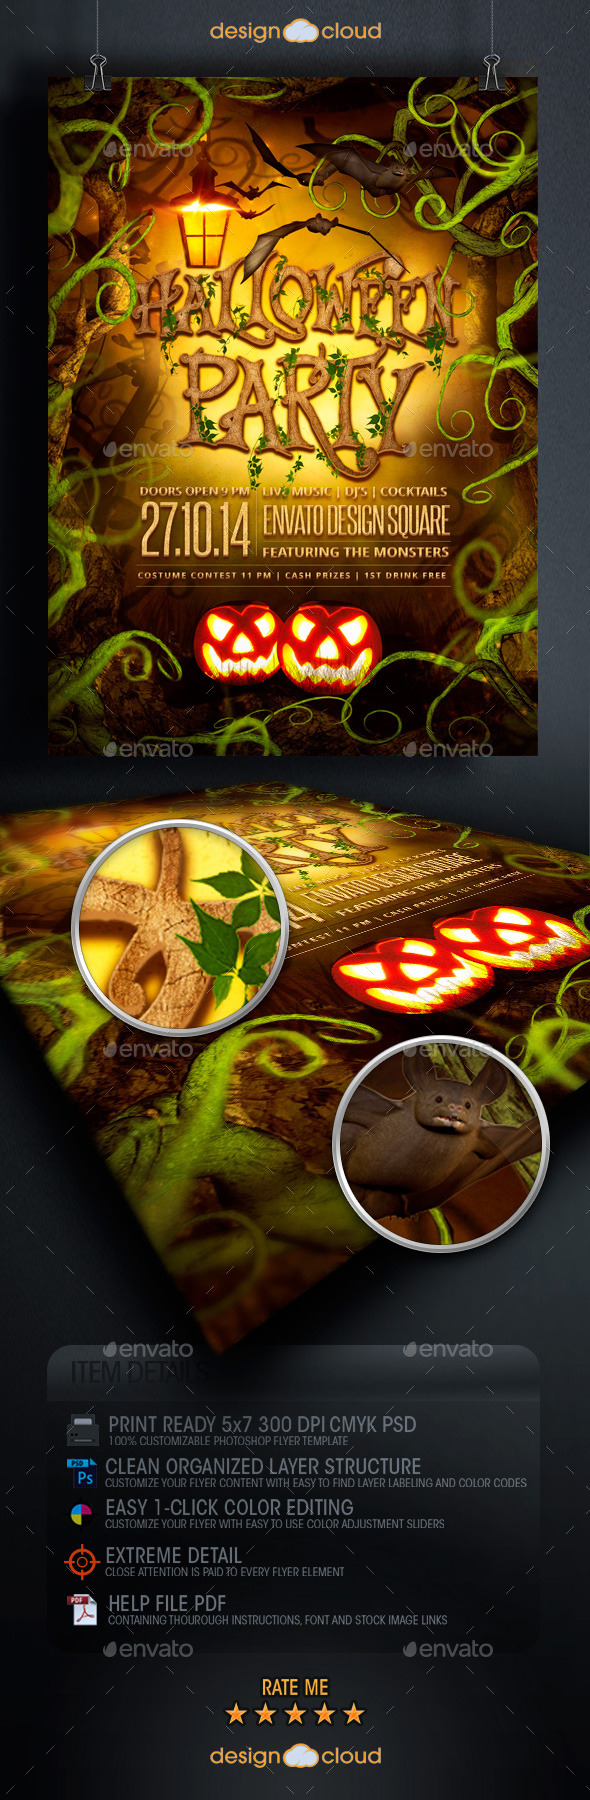 Spooky Forest Halloween Party Flyer Template - Holidays Events